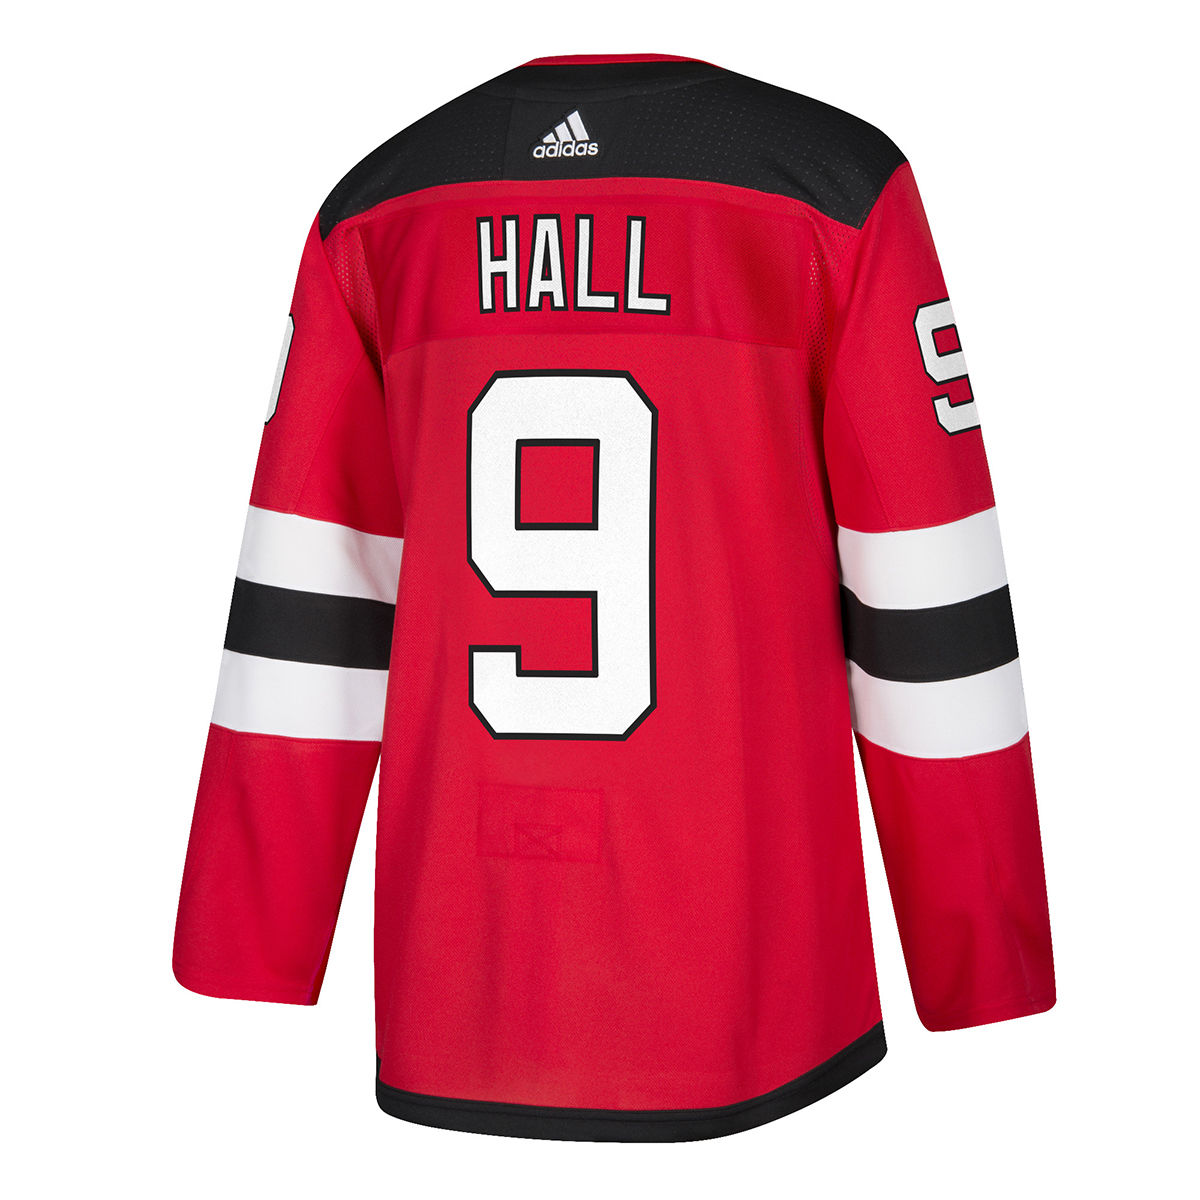 New Jersey Devils Adult Taylor Hall Authentic Jersey